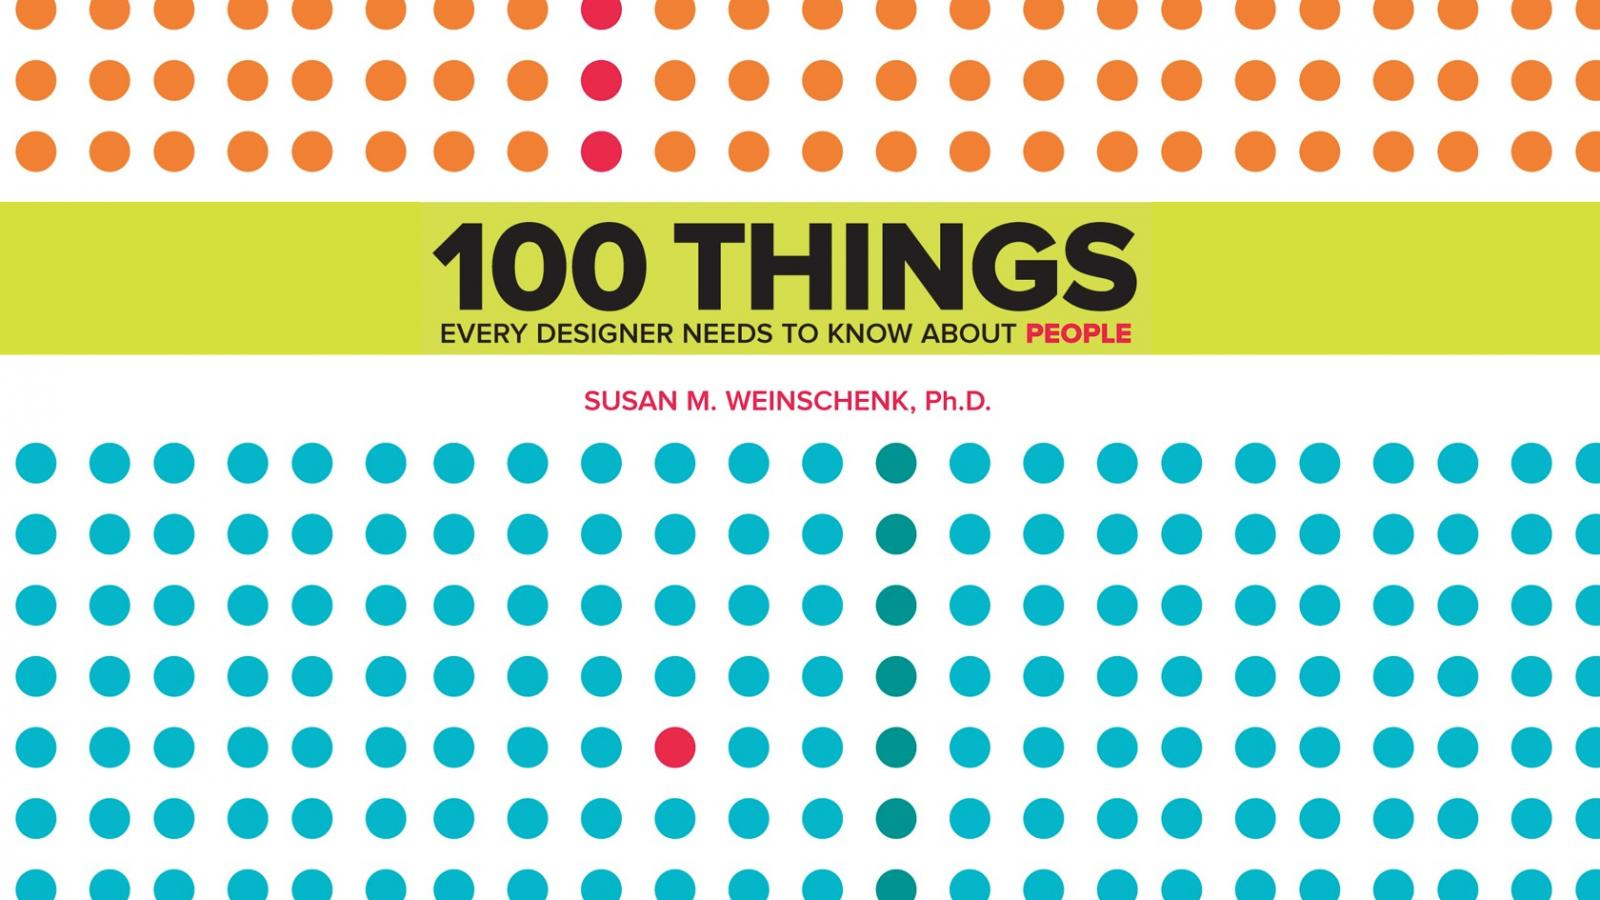 Book Suggestion: 100 Things Every Designer Needs to Know About People